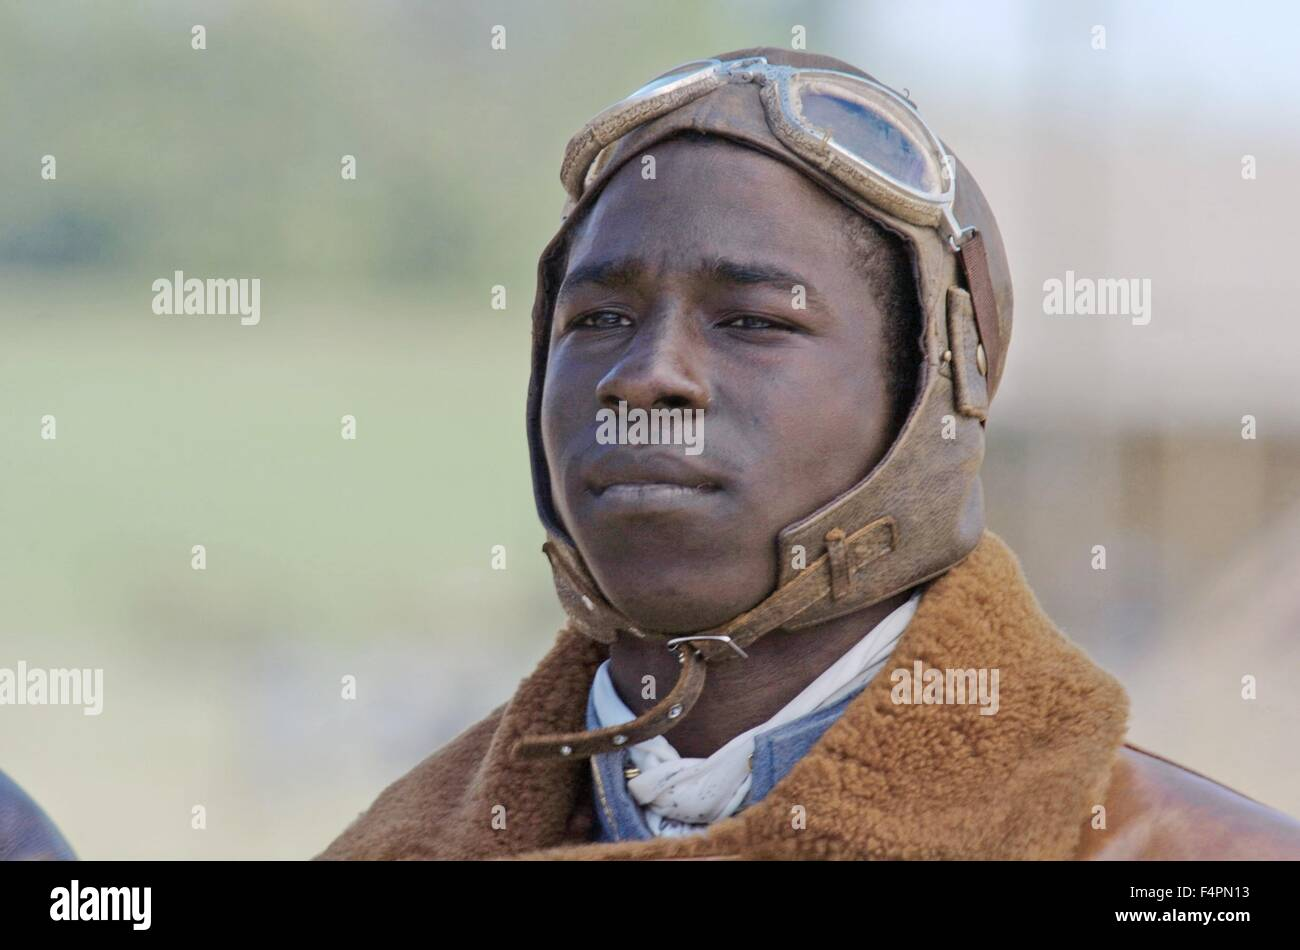 Abdul Salis  / Flyboys / 2006 directed by Tony Bill [Metro-Goldwyn-Mayer Pictures] - Stock Image